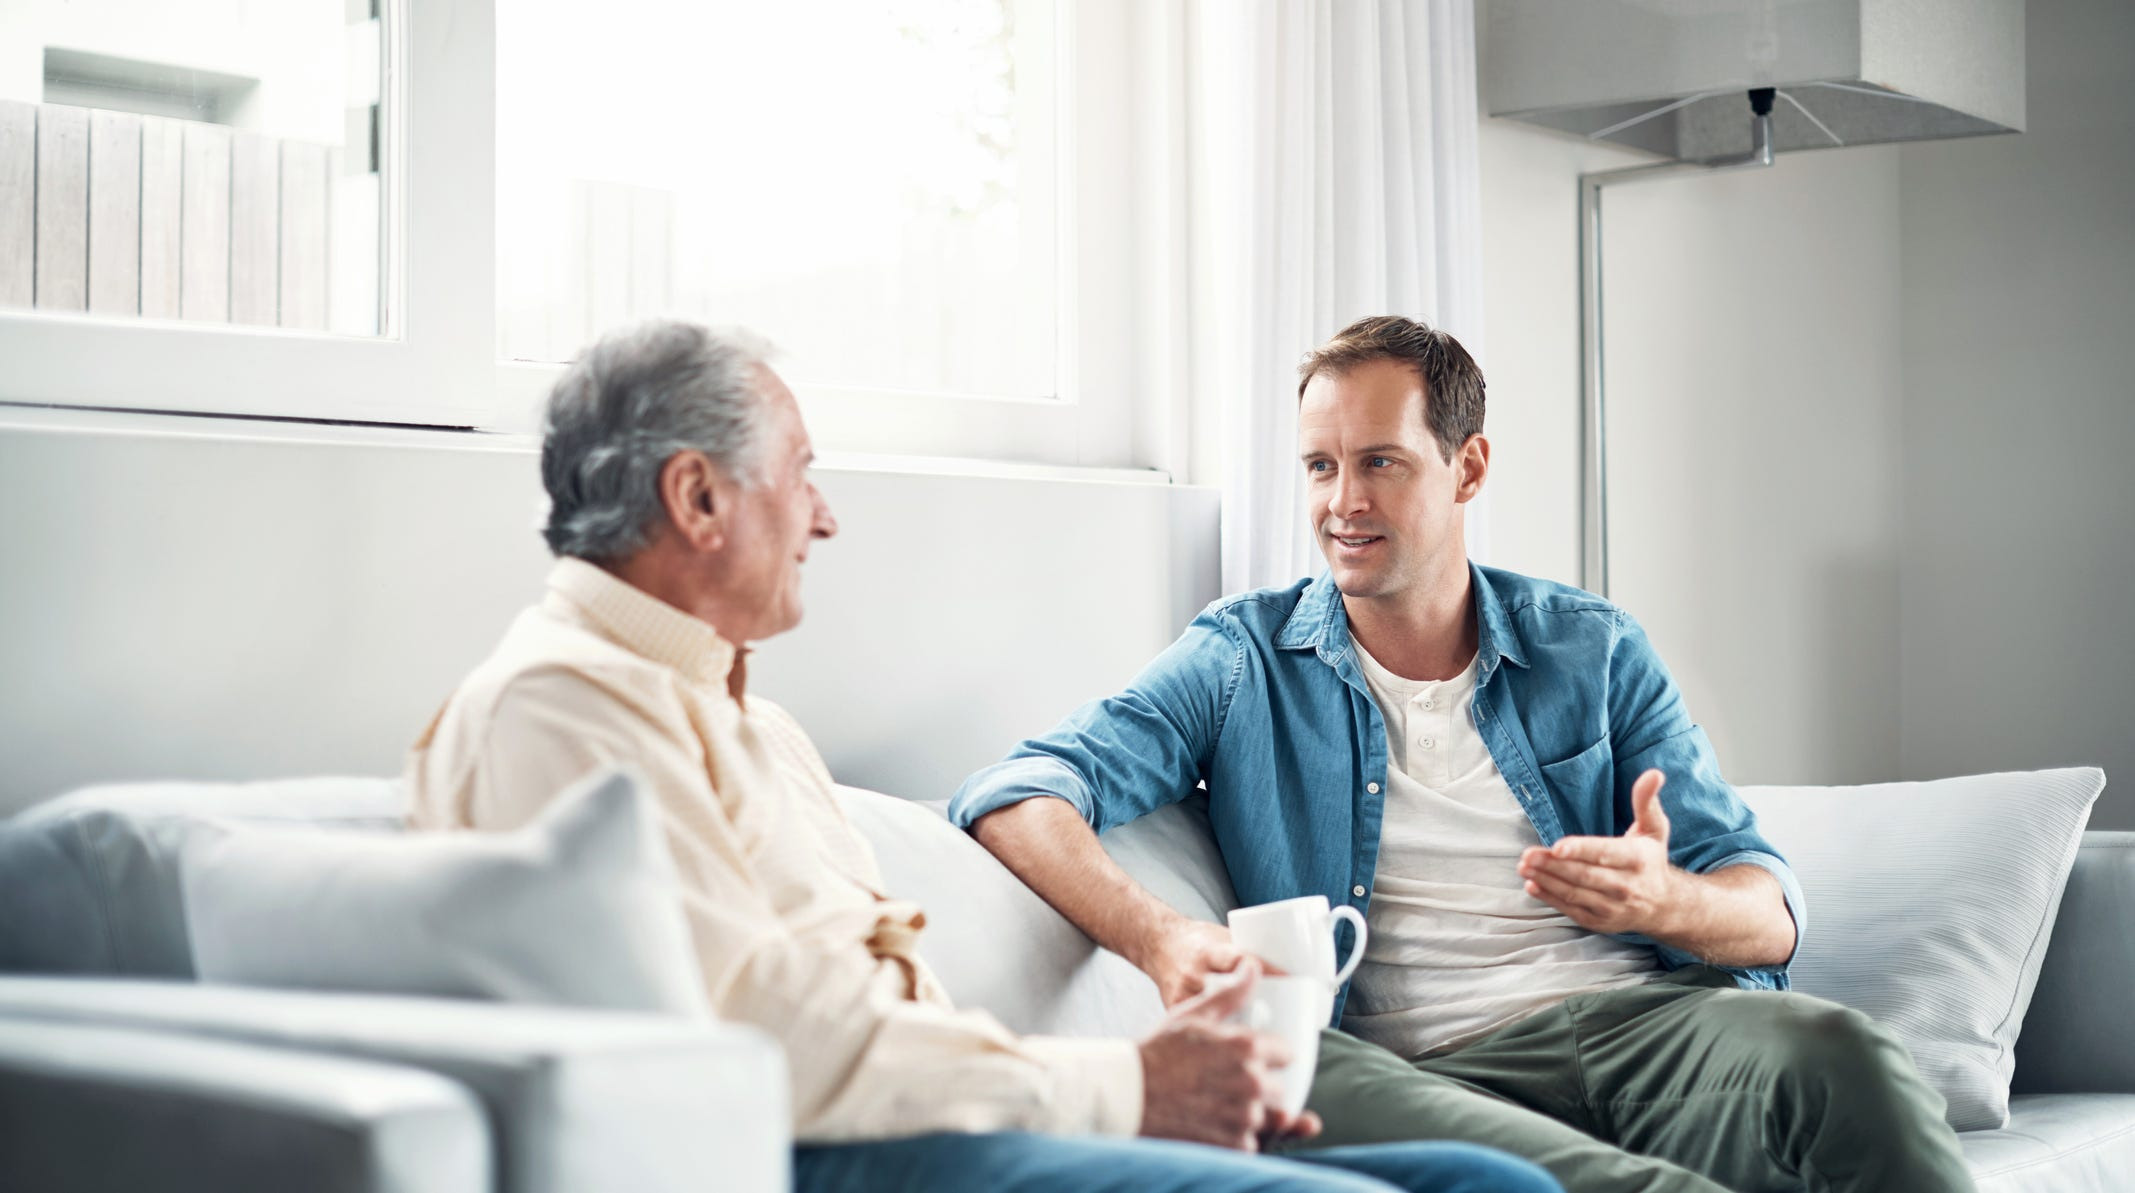 During the month of Movember, men are encouraged to speak up about their wellbeing and make doctors' appointments to address common health problems.